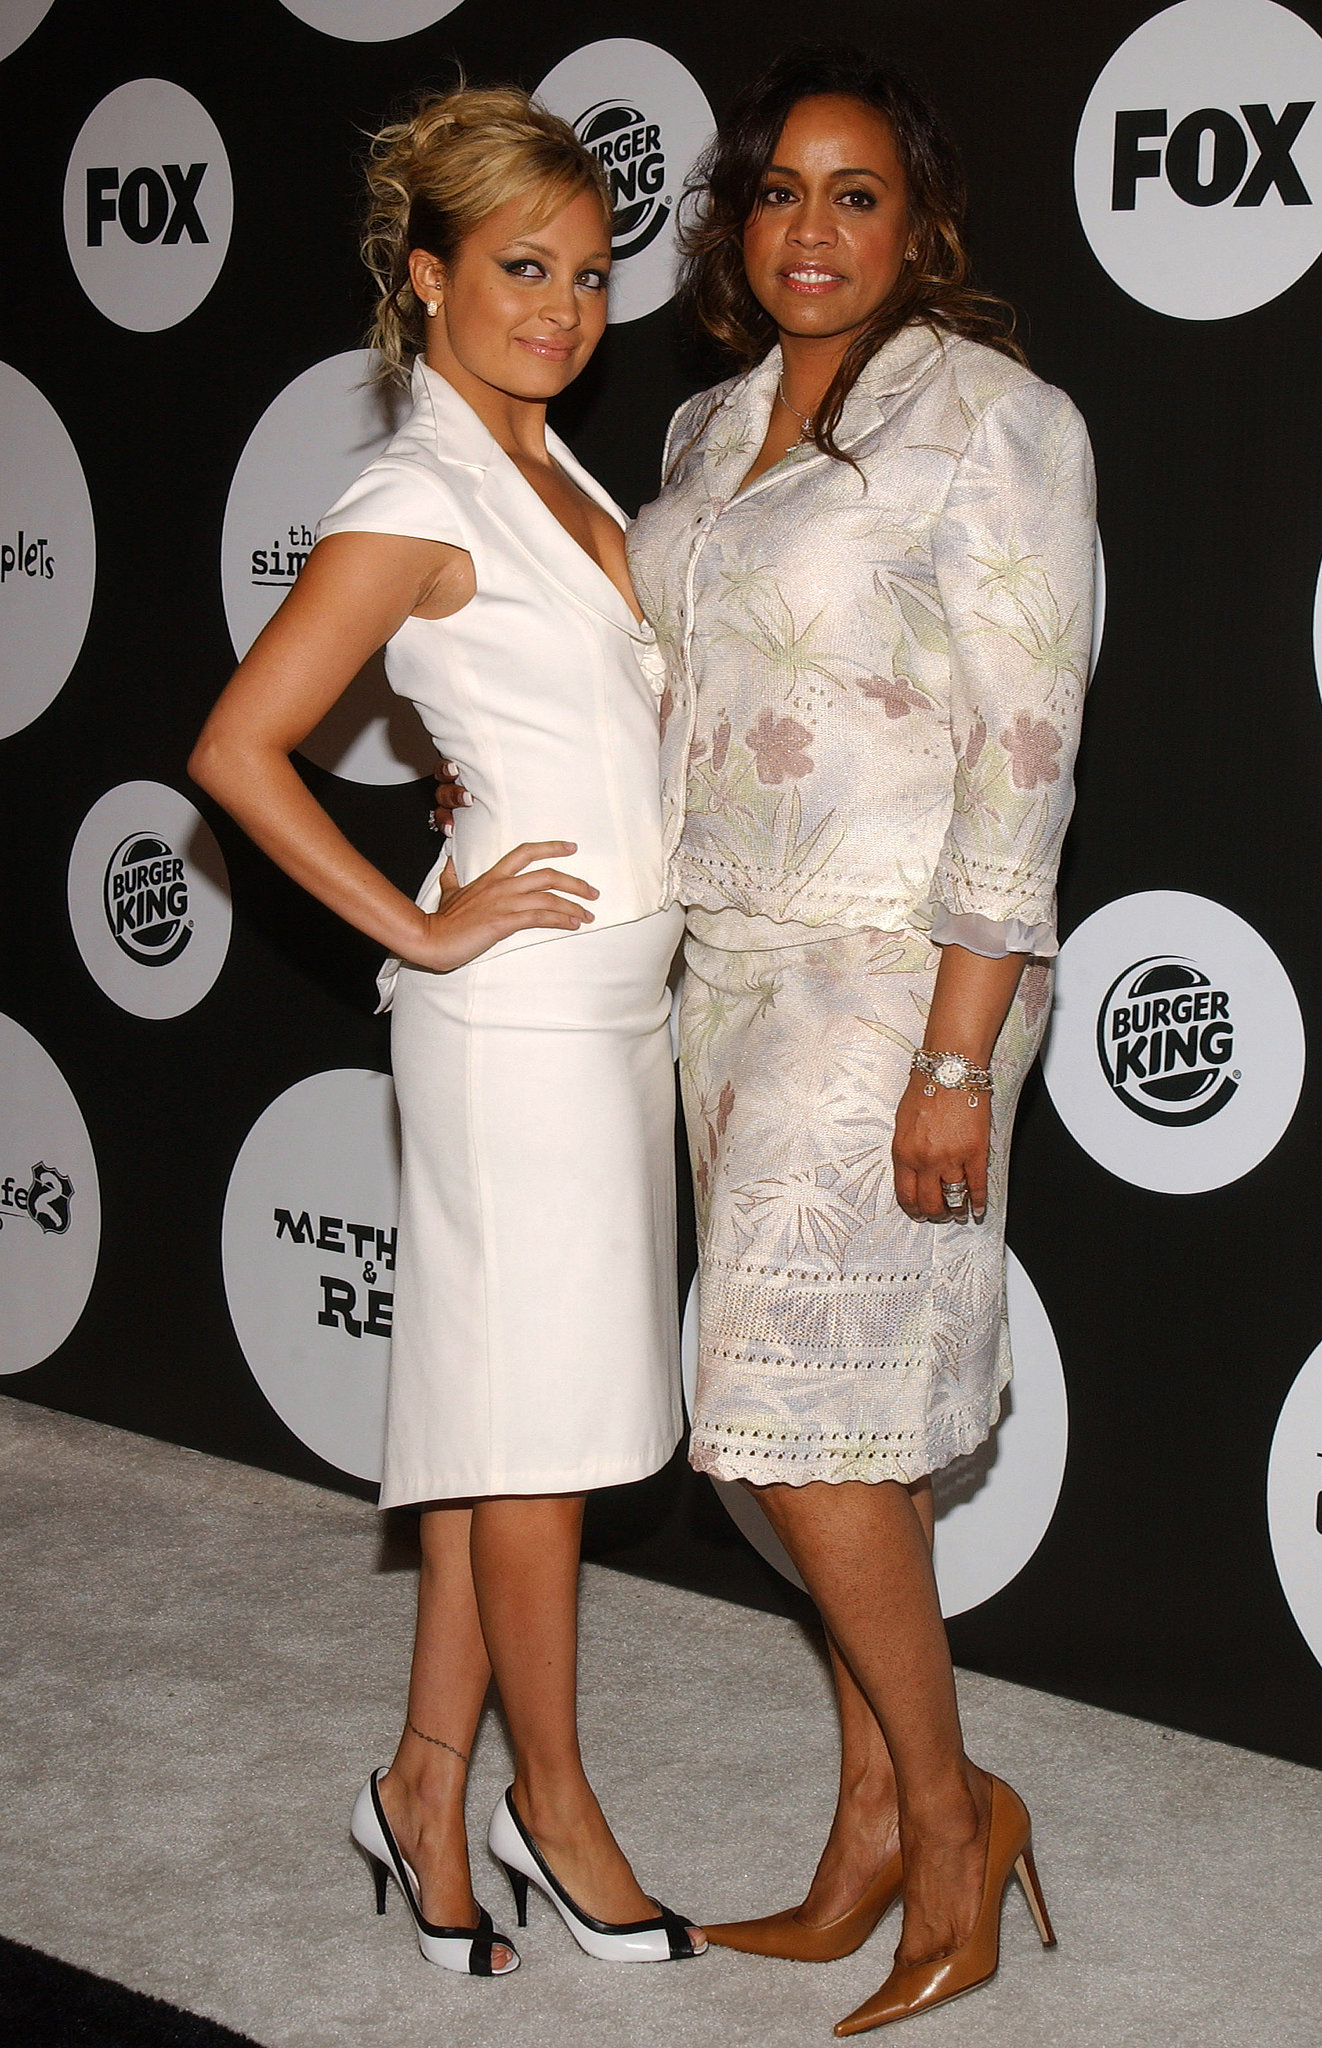 Nicole Richie went for a mature suited-up look while attending a Fox event with her mom, Brenda, in June 2004.